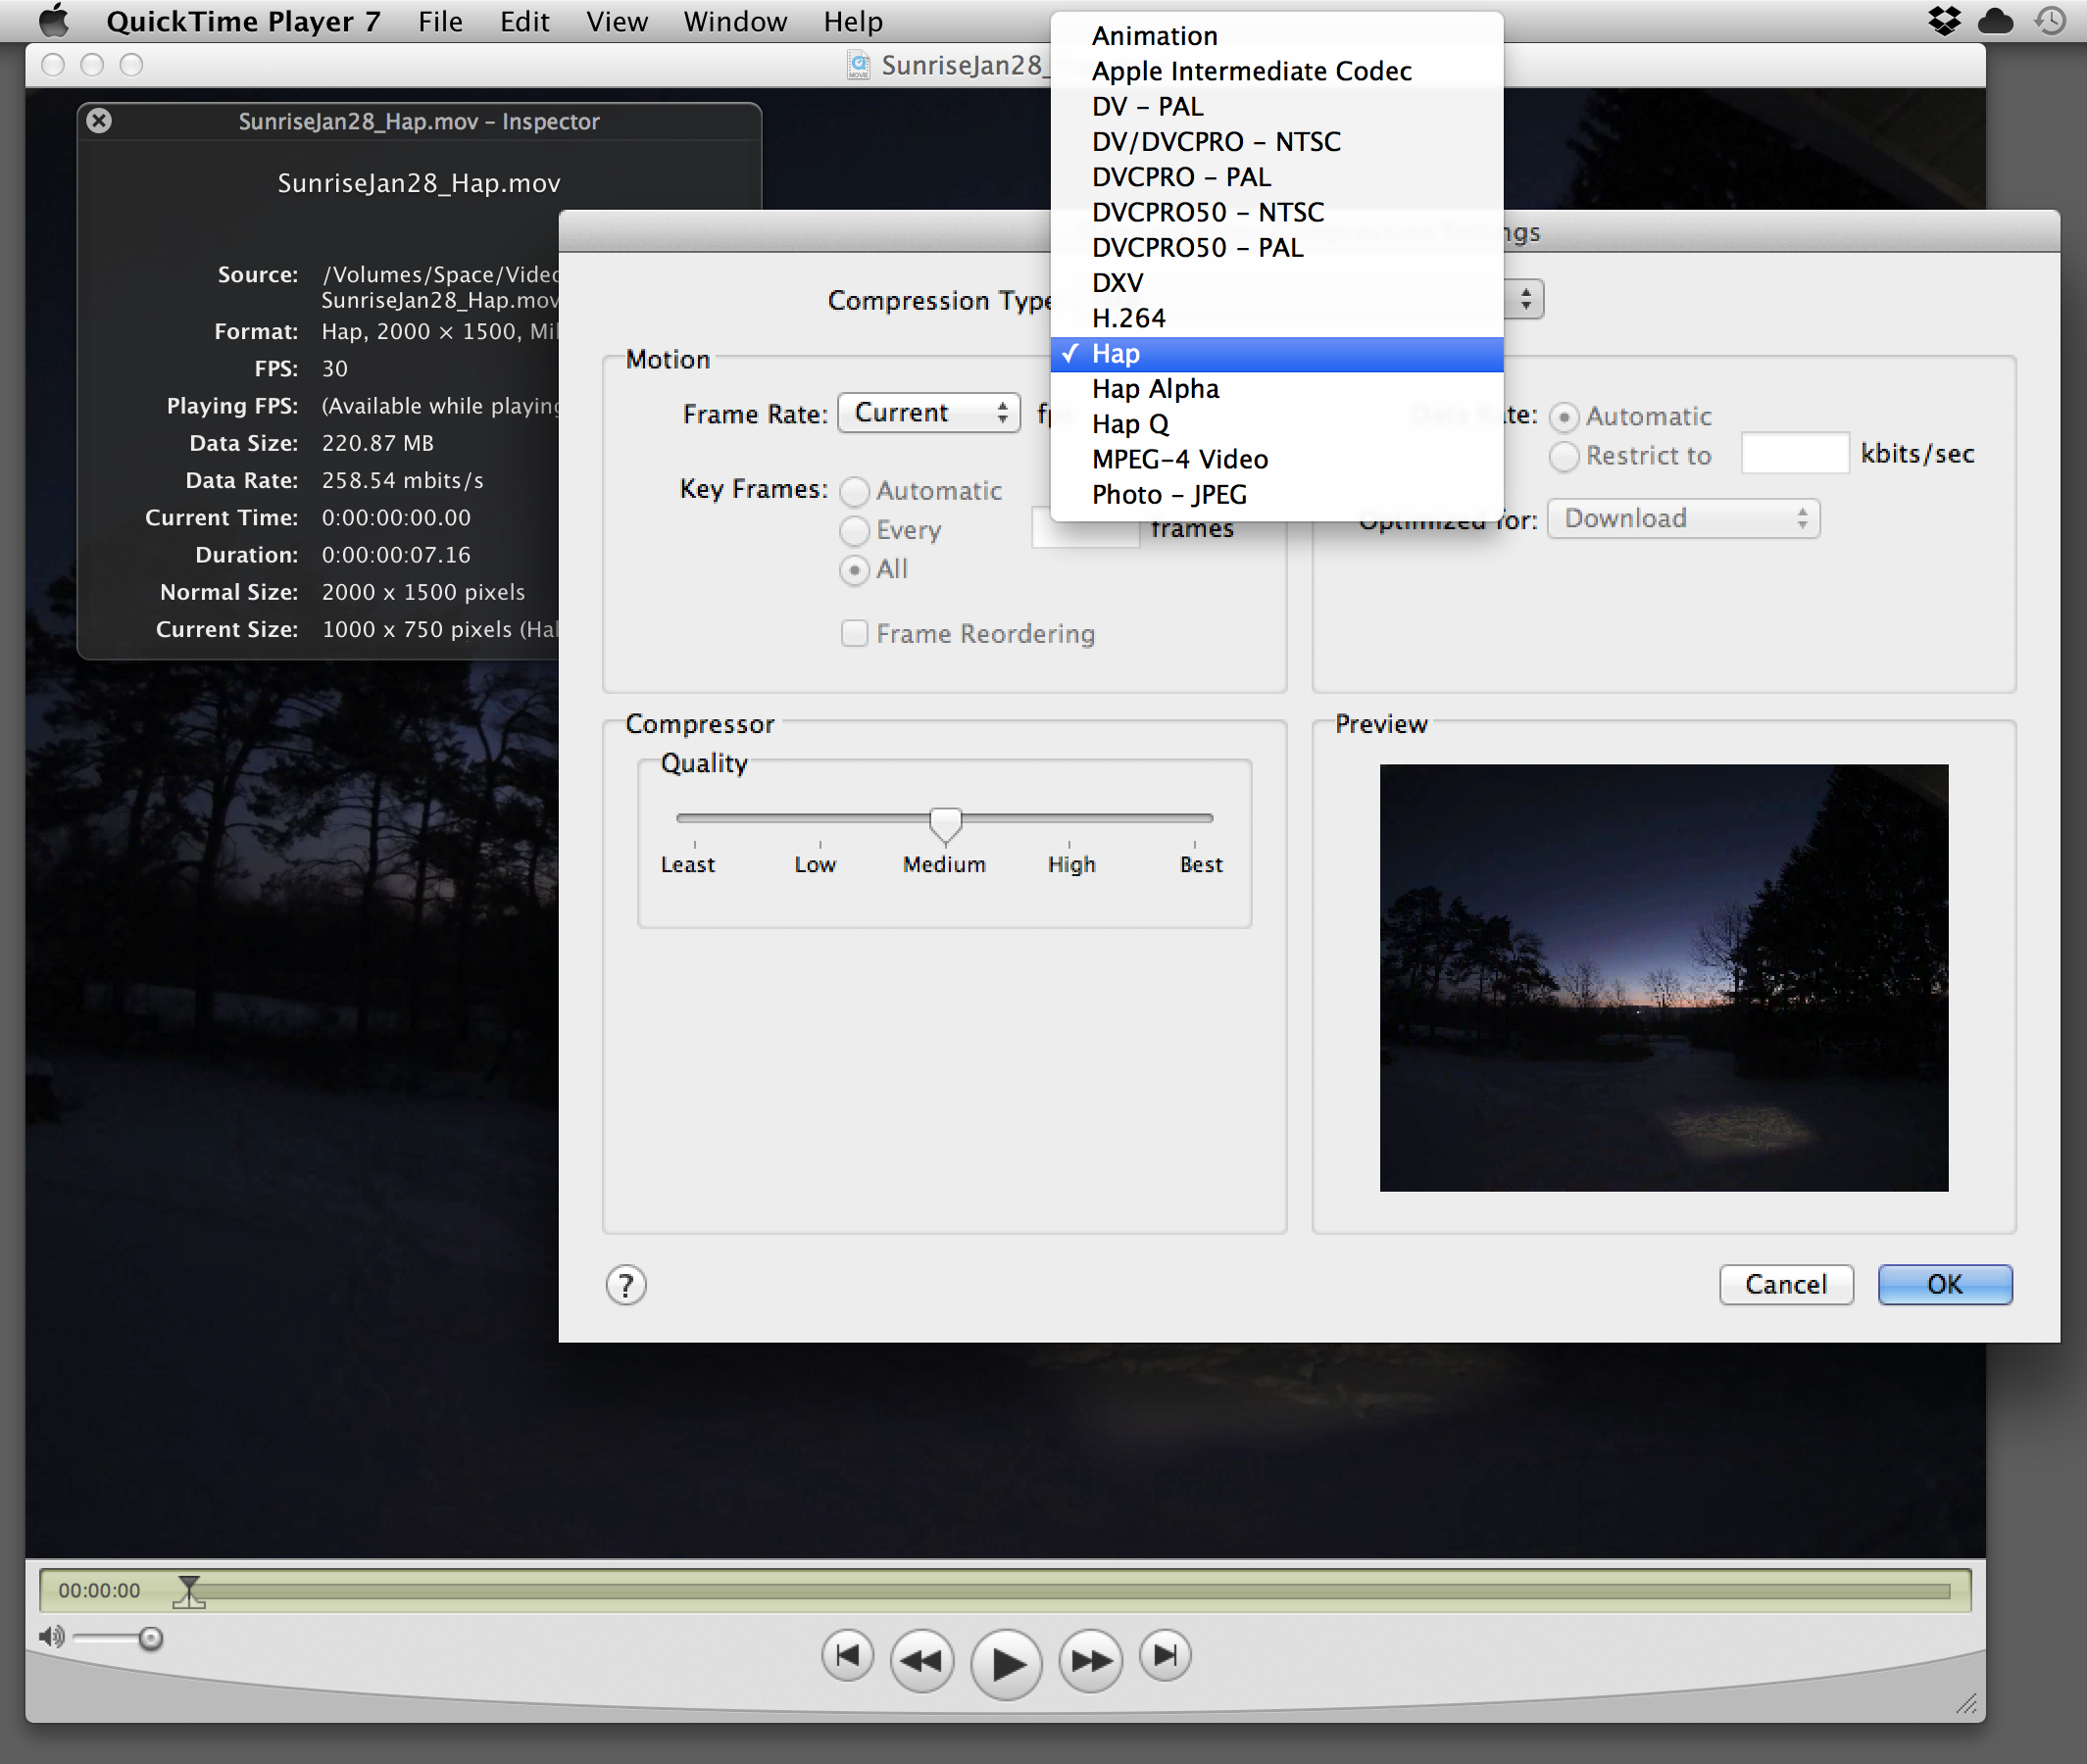 Hap, Hap Alpha and Hap Q show up as codec options in the standard Mac Quicktime export panel.